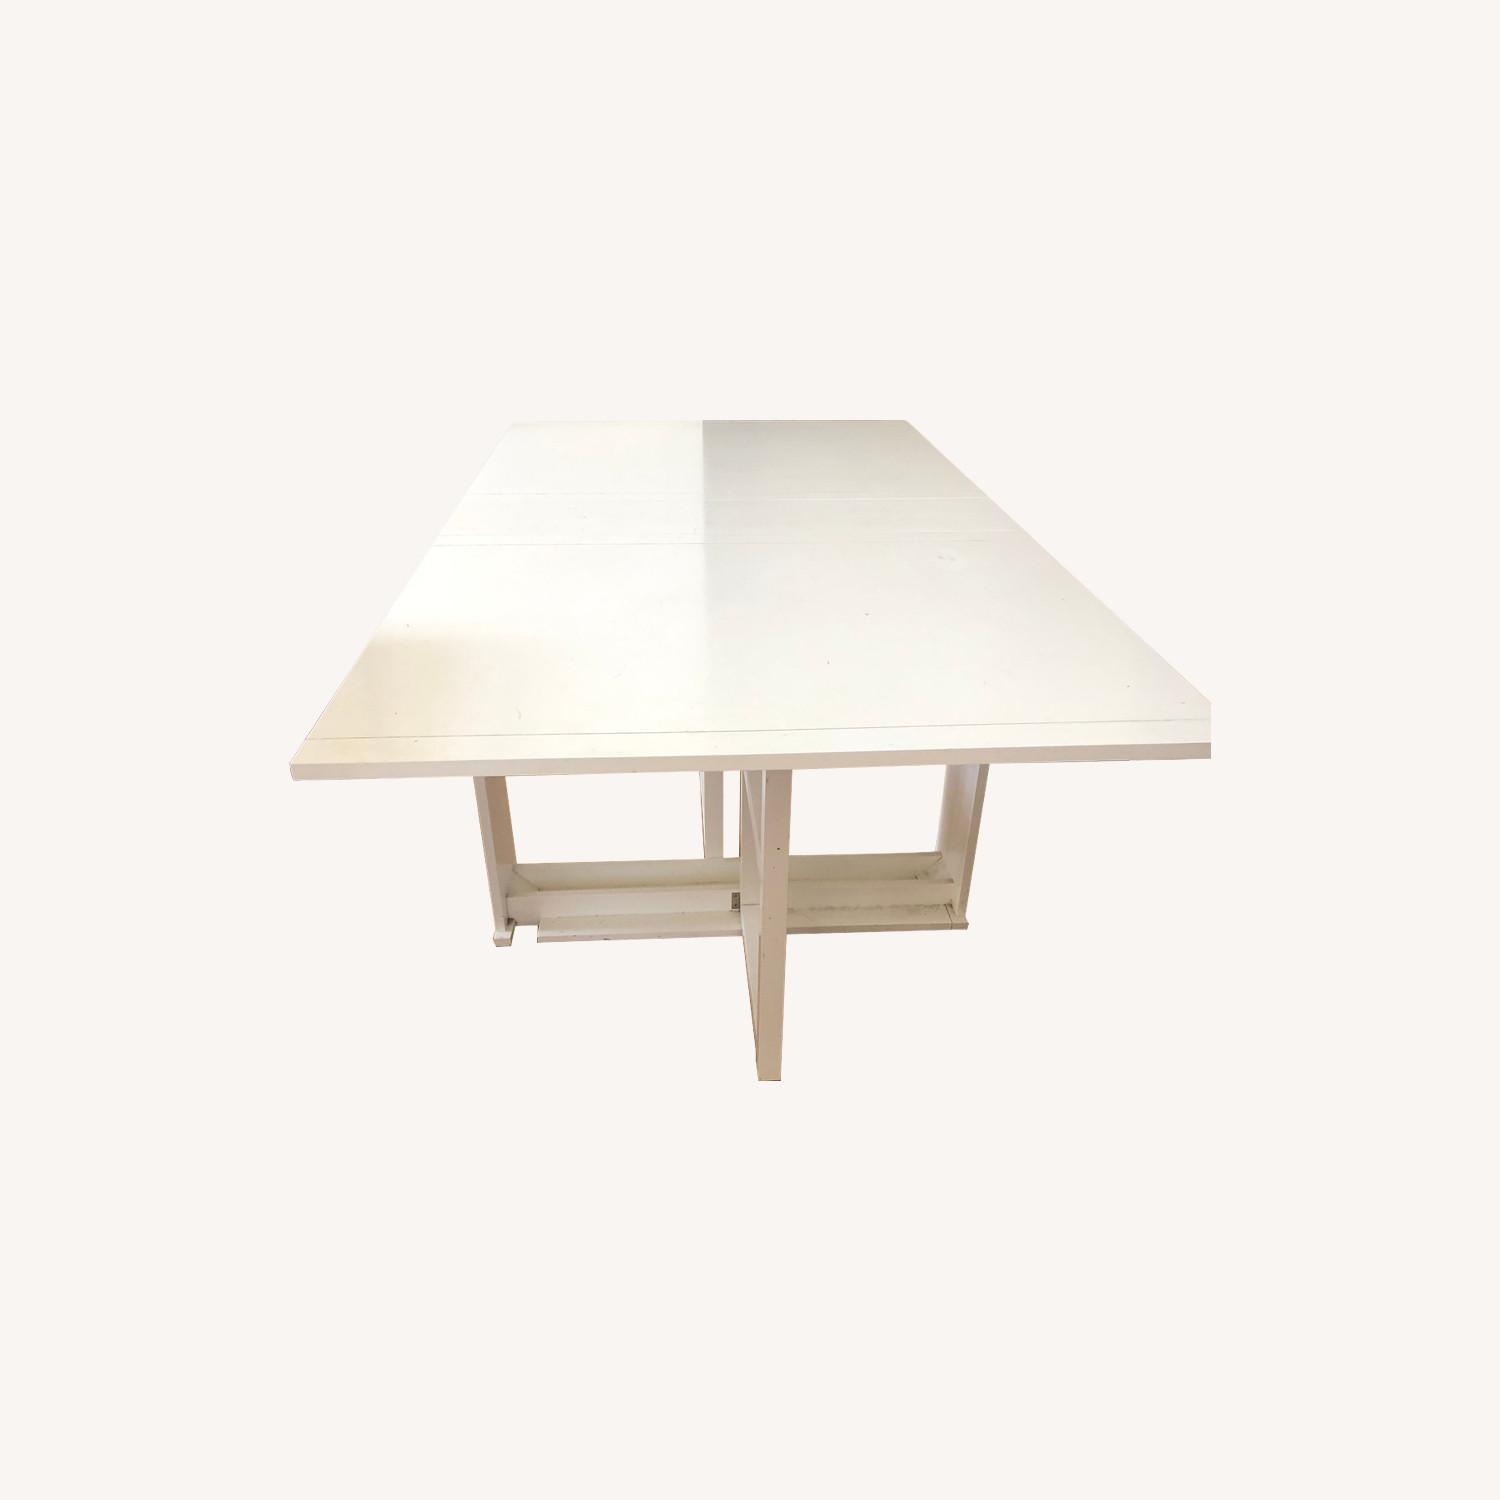 Crate & Barrel Foldable Dining Table - image-0